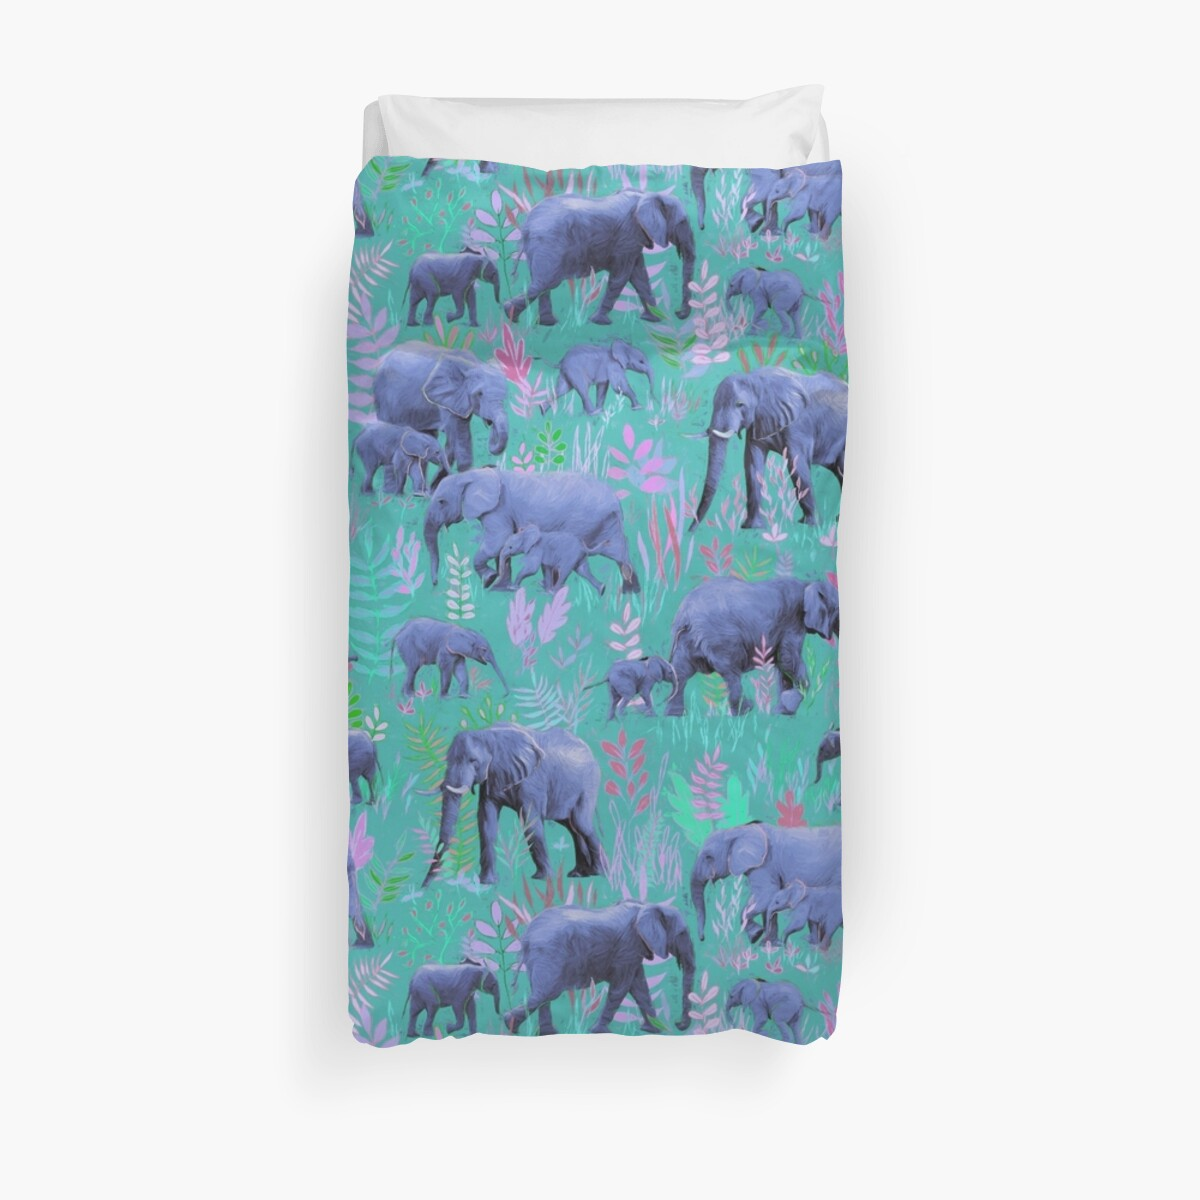 Quot Sweet Elephants In Bright Teal Pink And Purple Quot Duvet